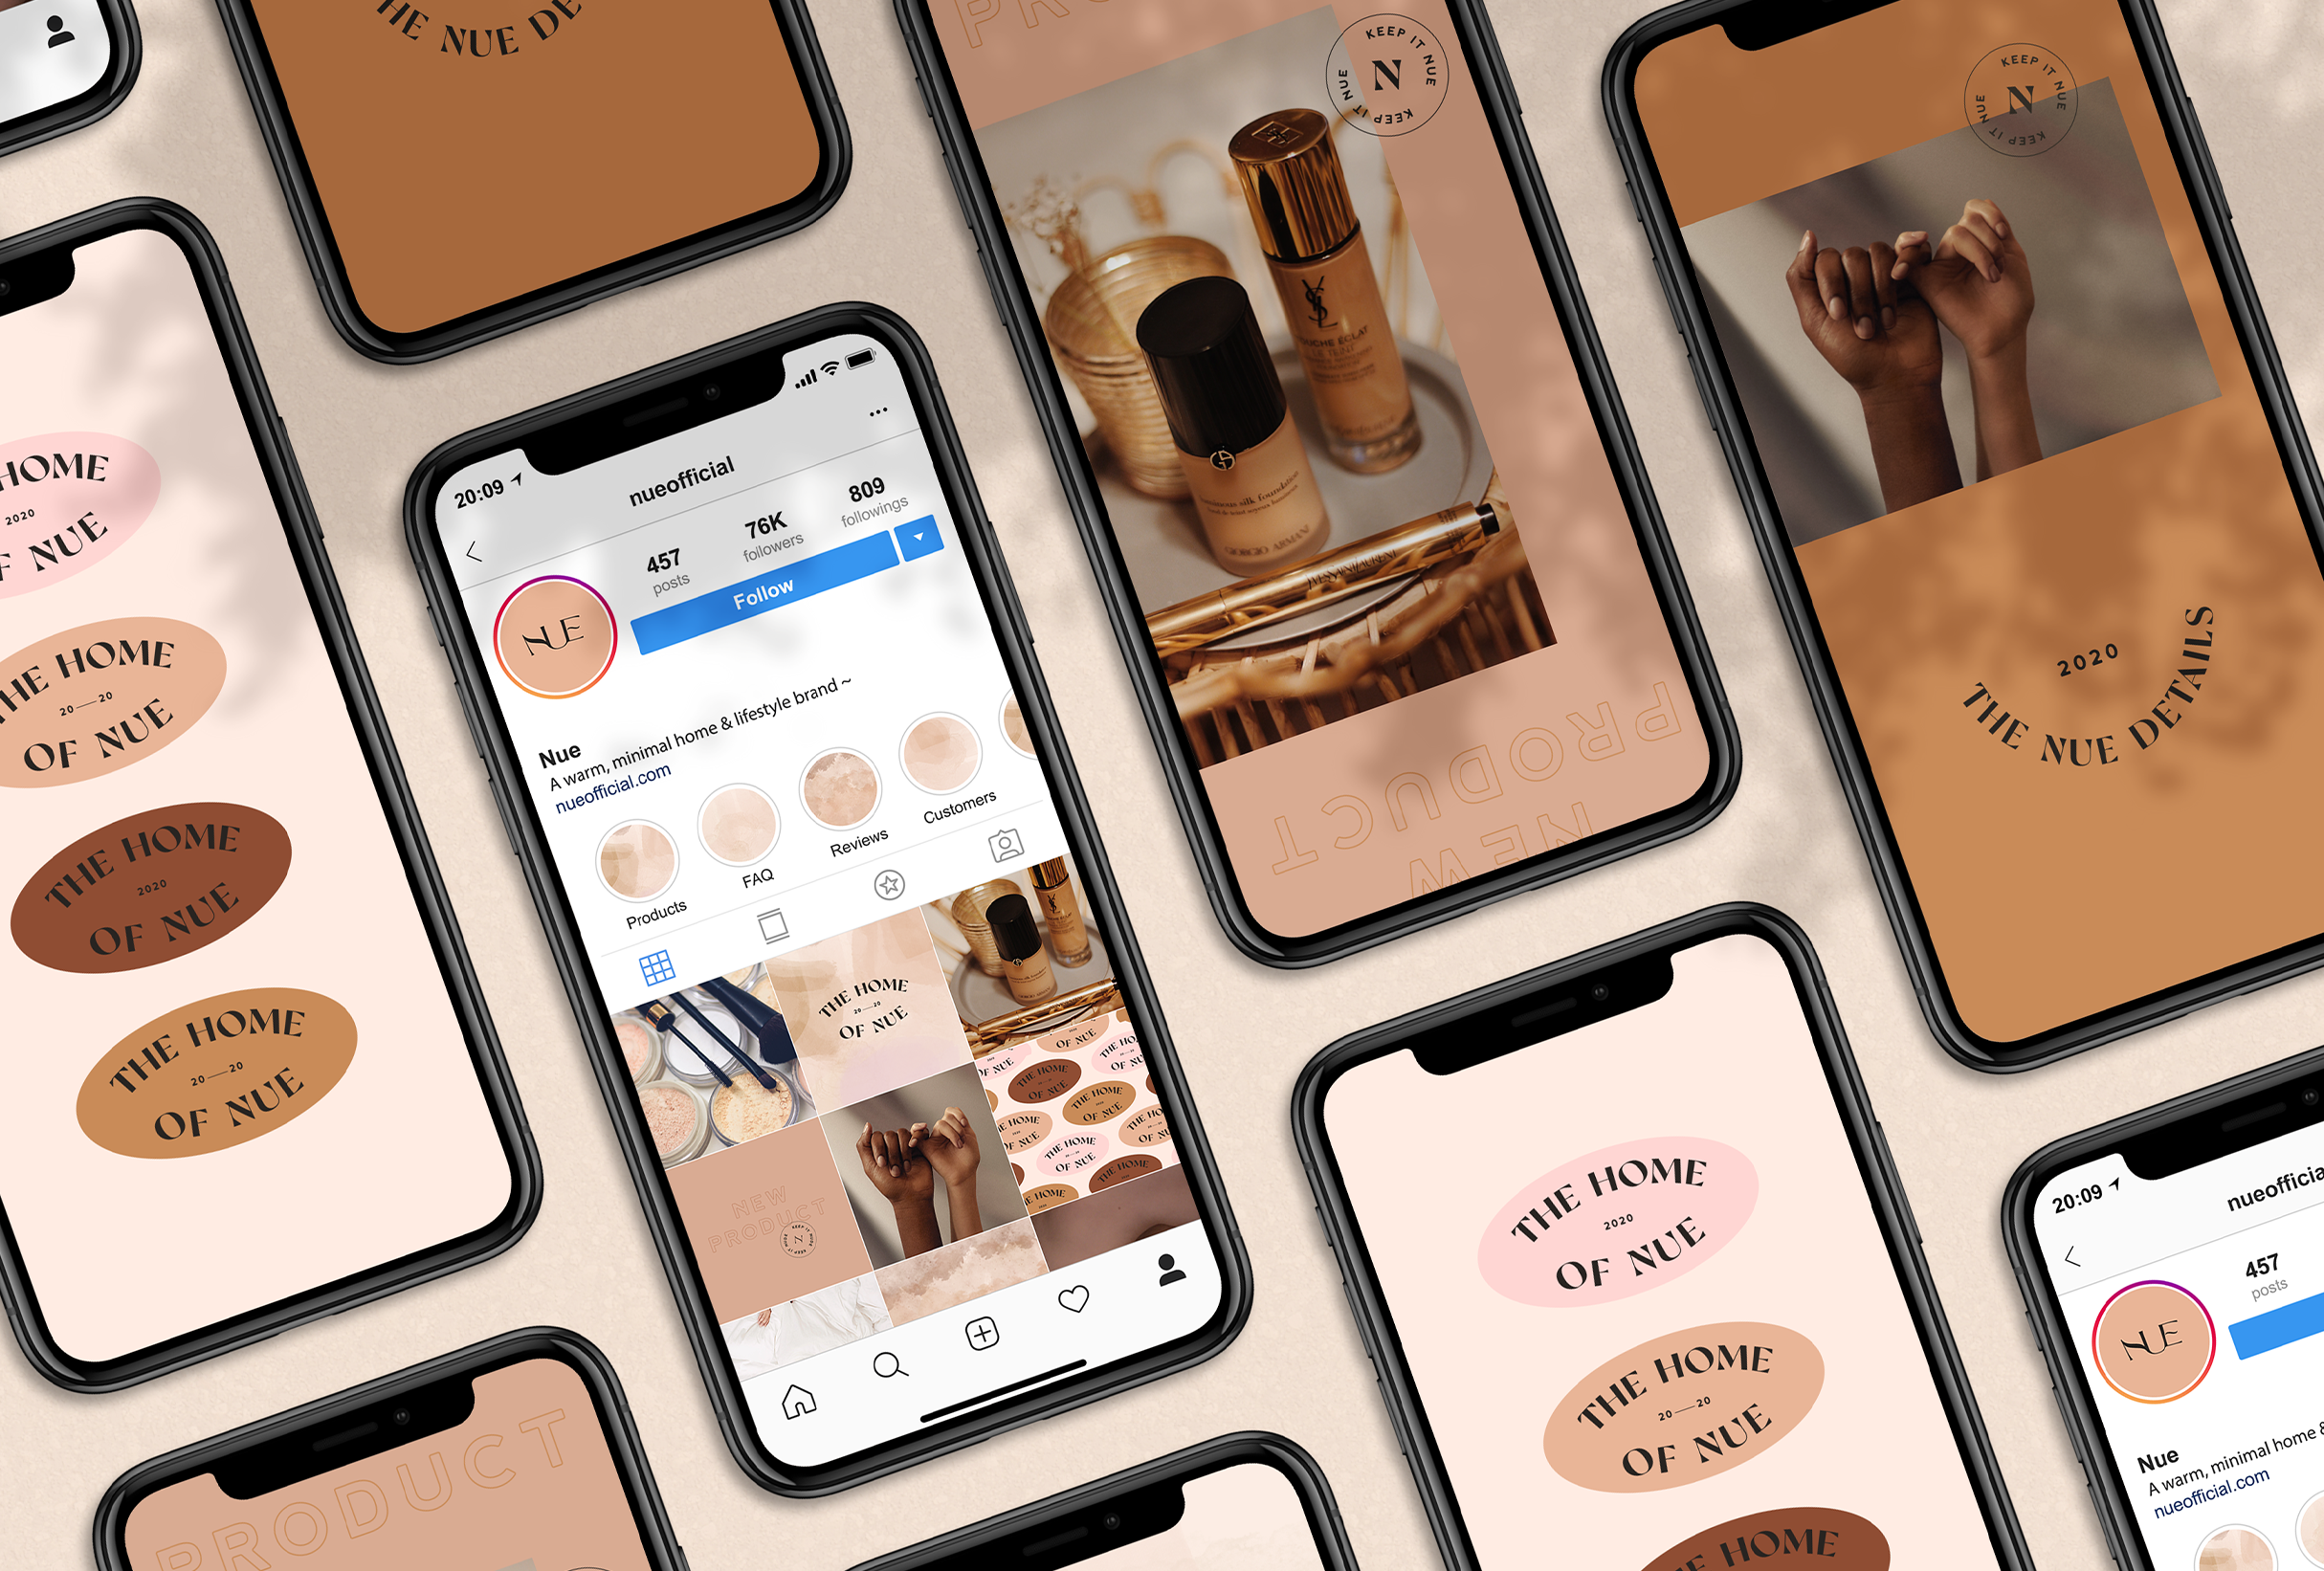 Instagram strategy for Nue, home, beauty & lifestyle brand specialsing in nude shades for their products - designed by Wiltshire-based graphic designer, Kaye Huett